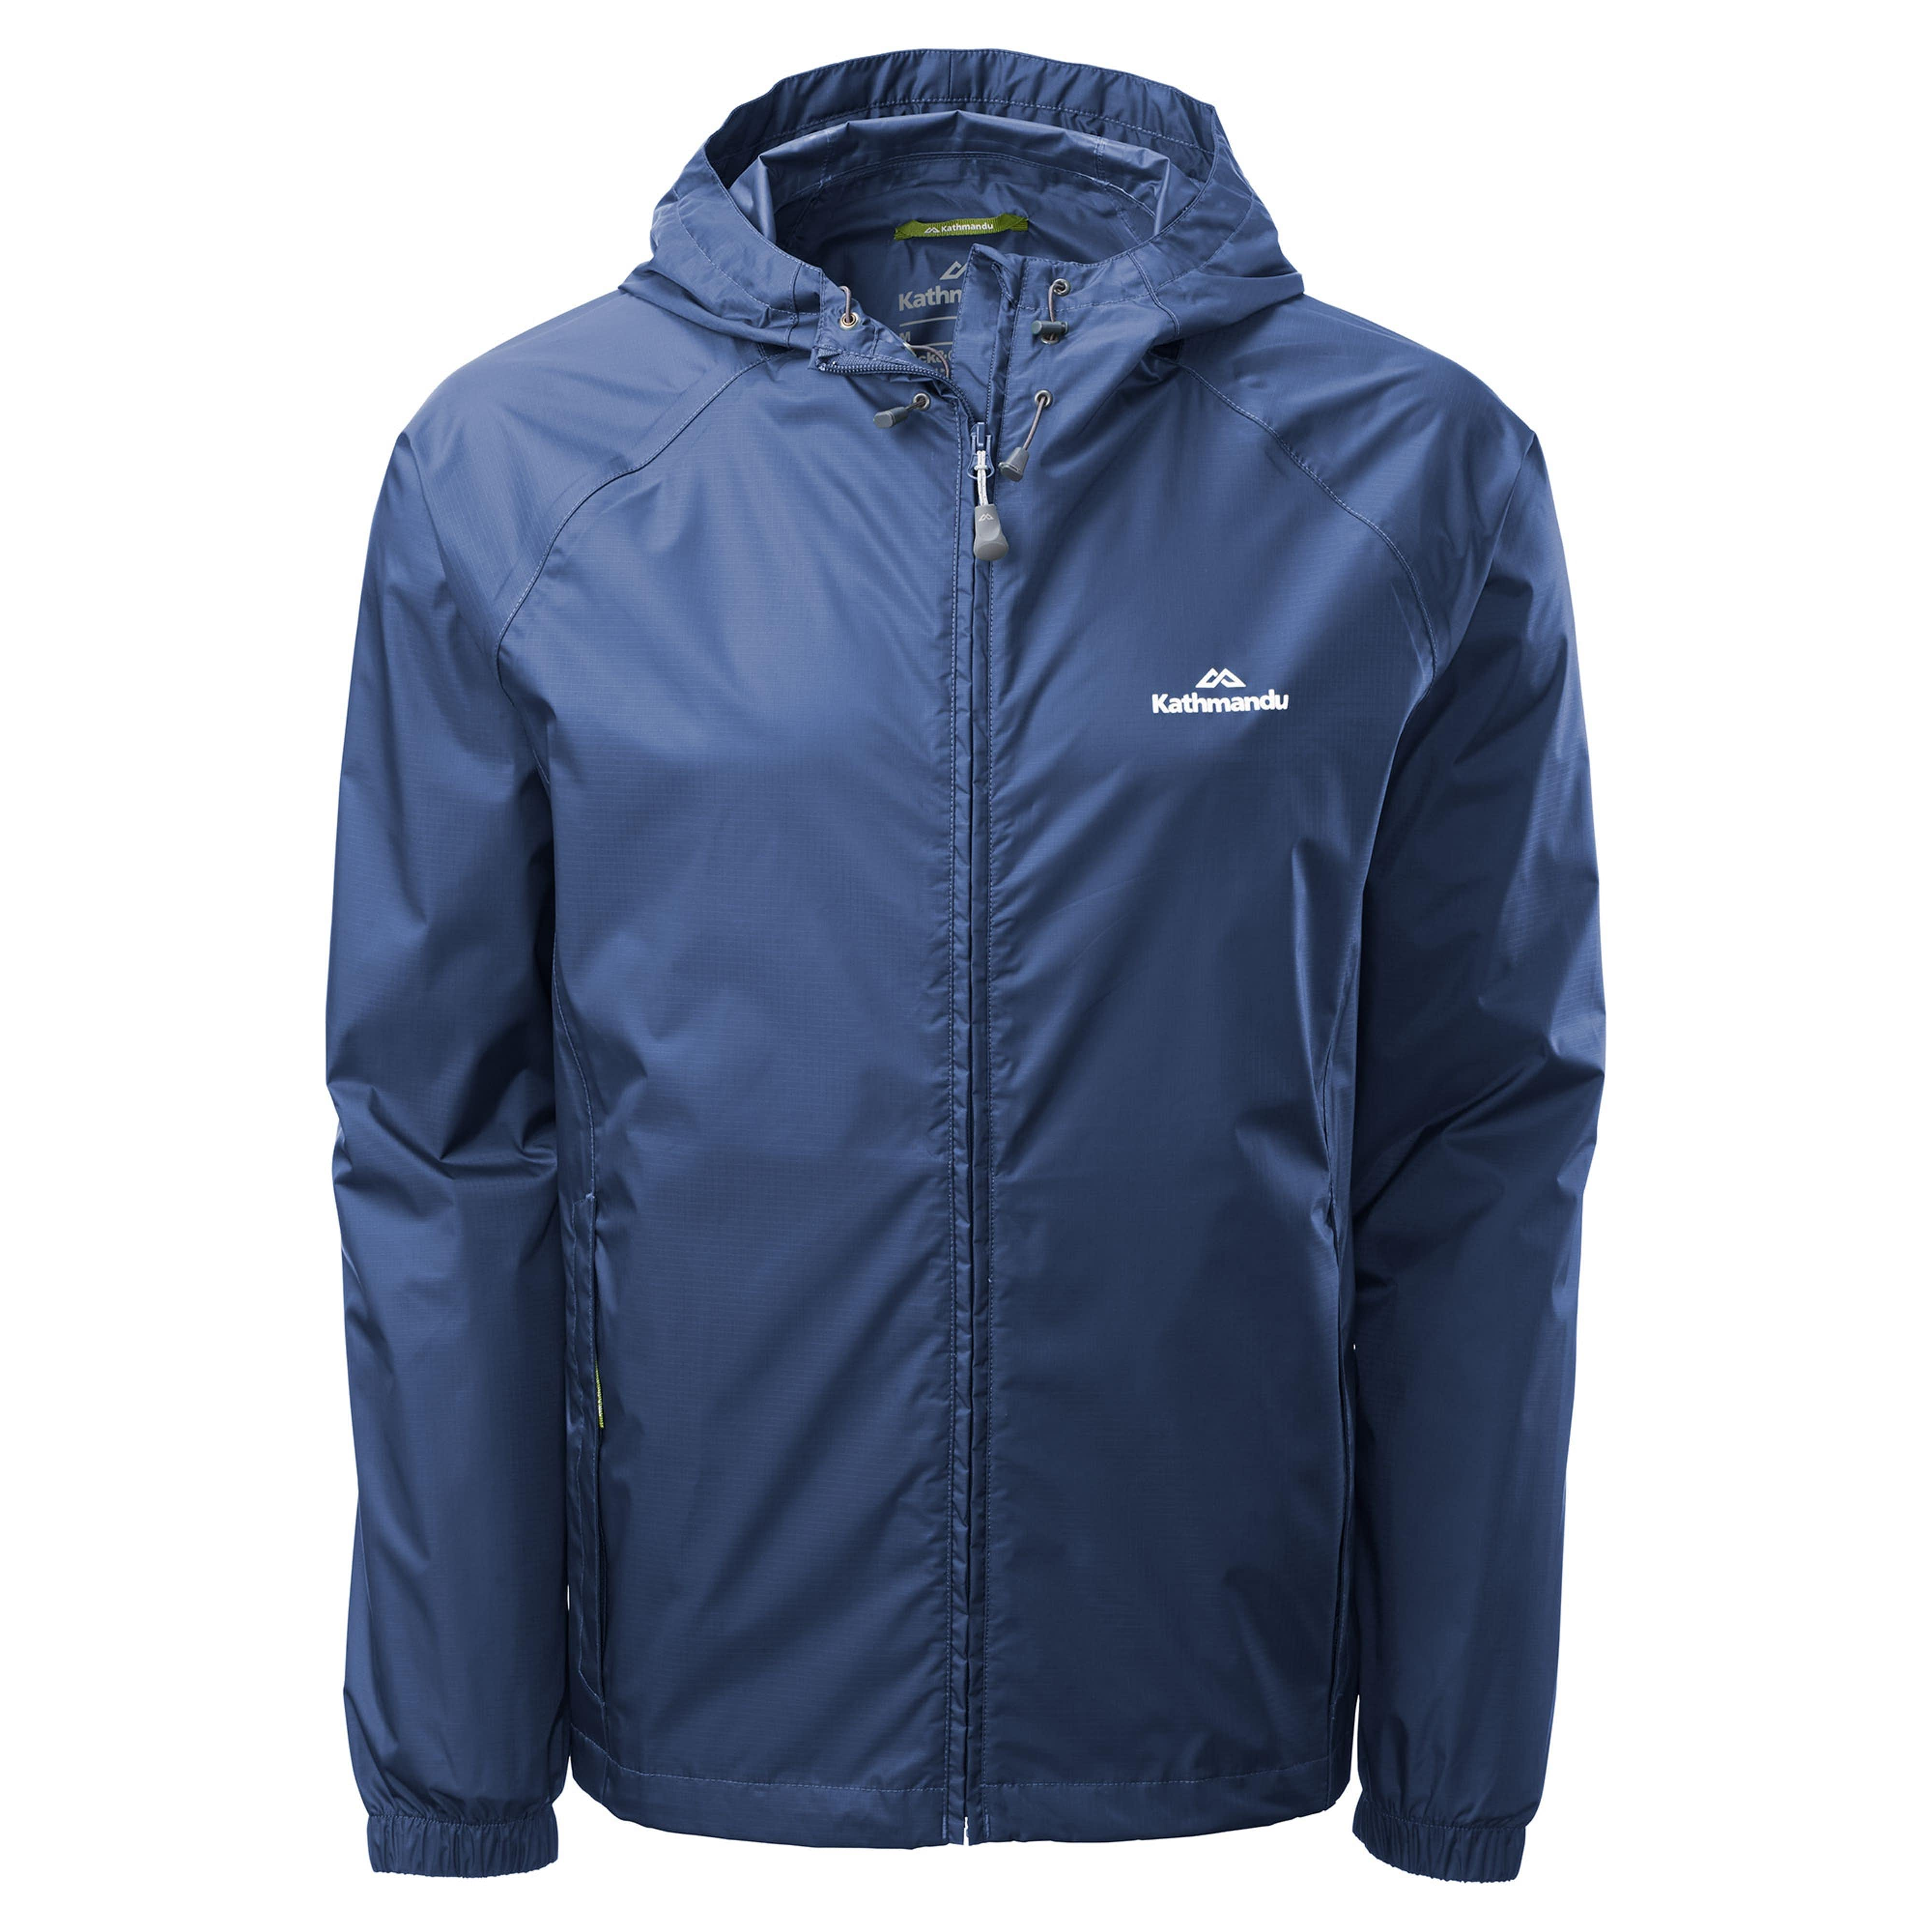 Pocket-it Men s Rain Jacket v3 - Storm Blue aa3656777d10